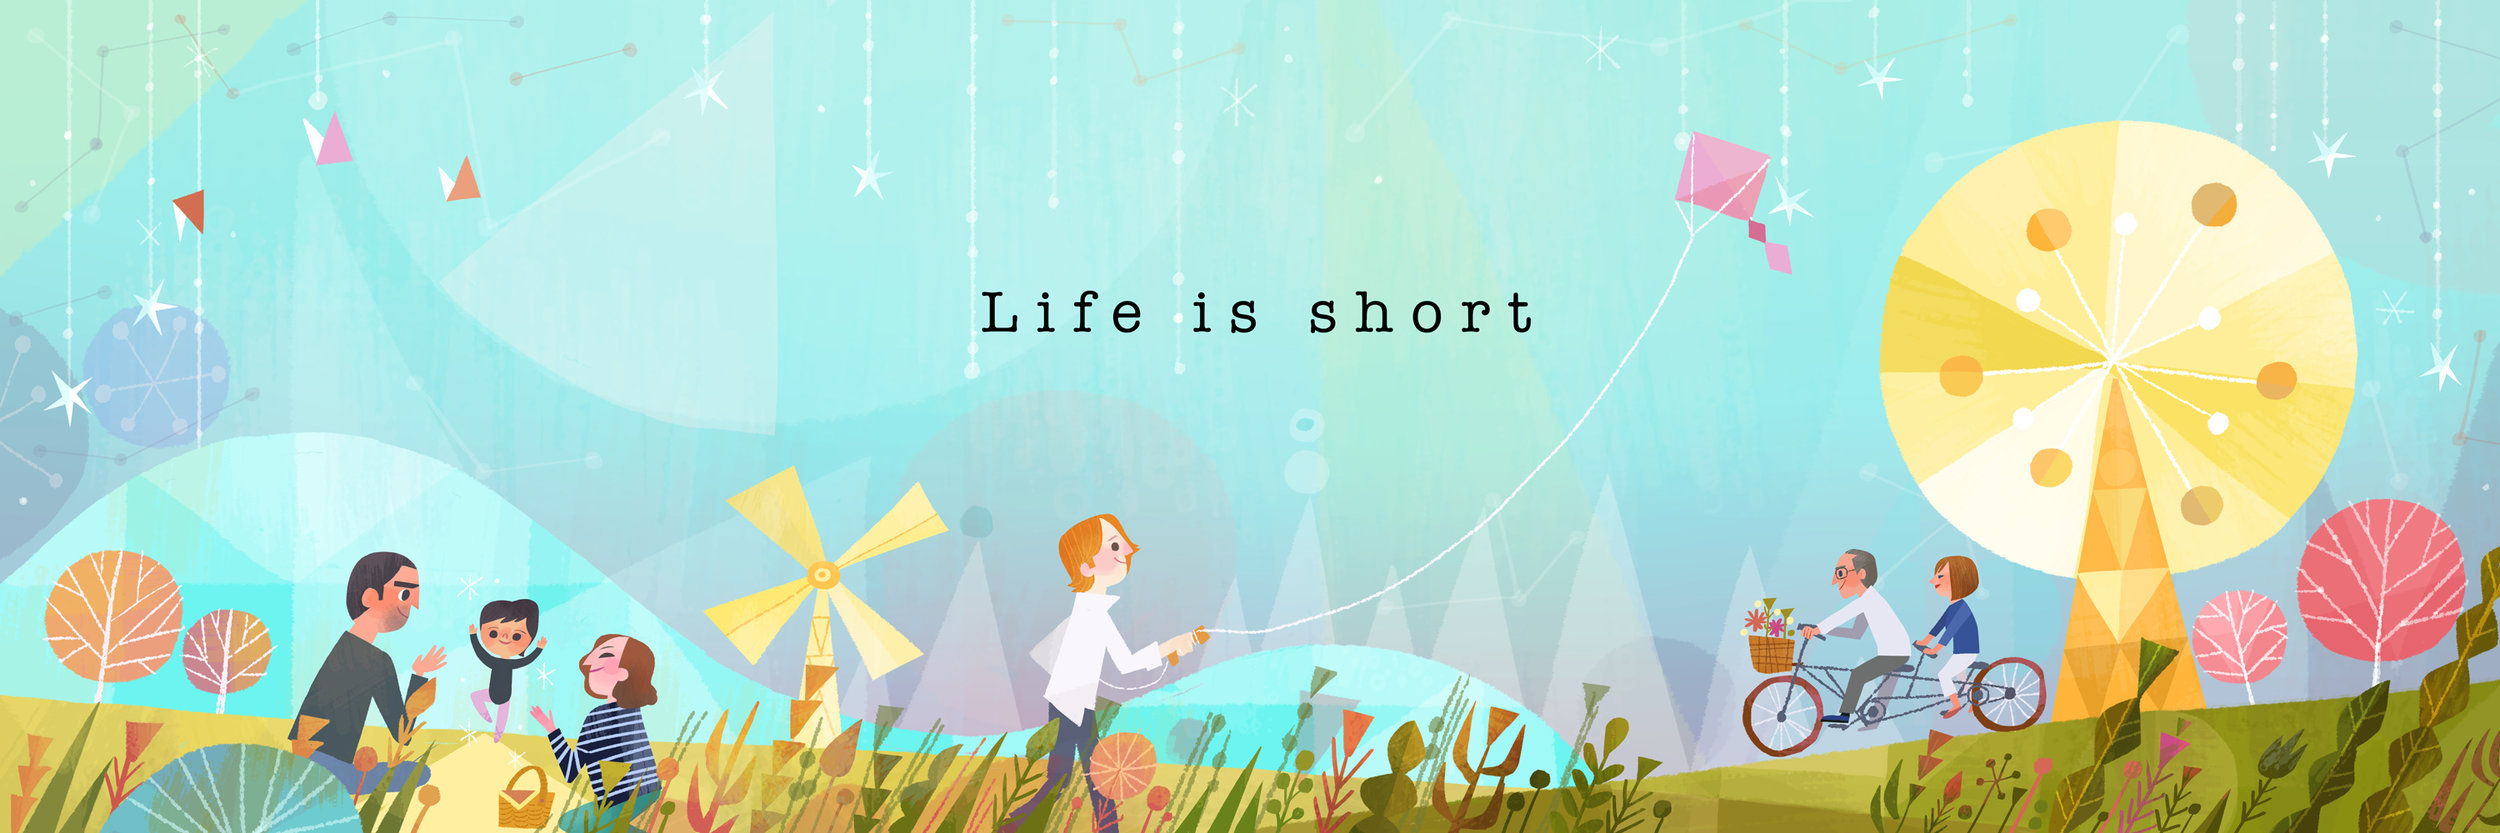 life_is_short_color.jpg